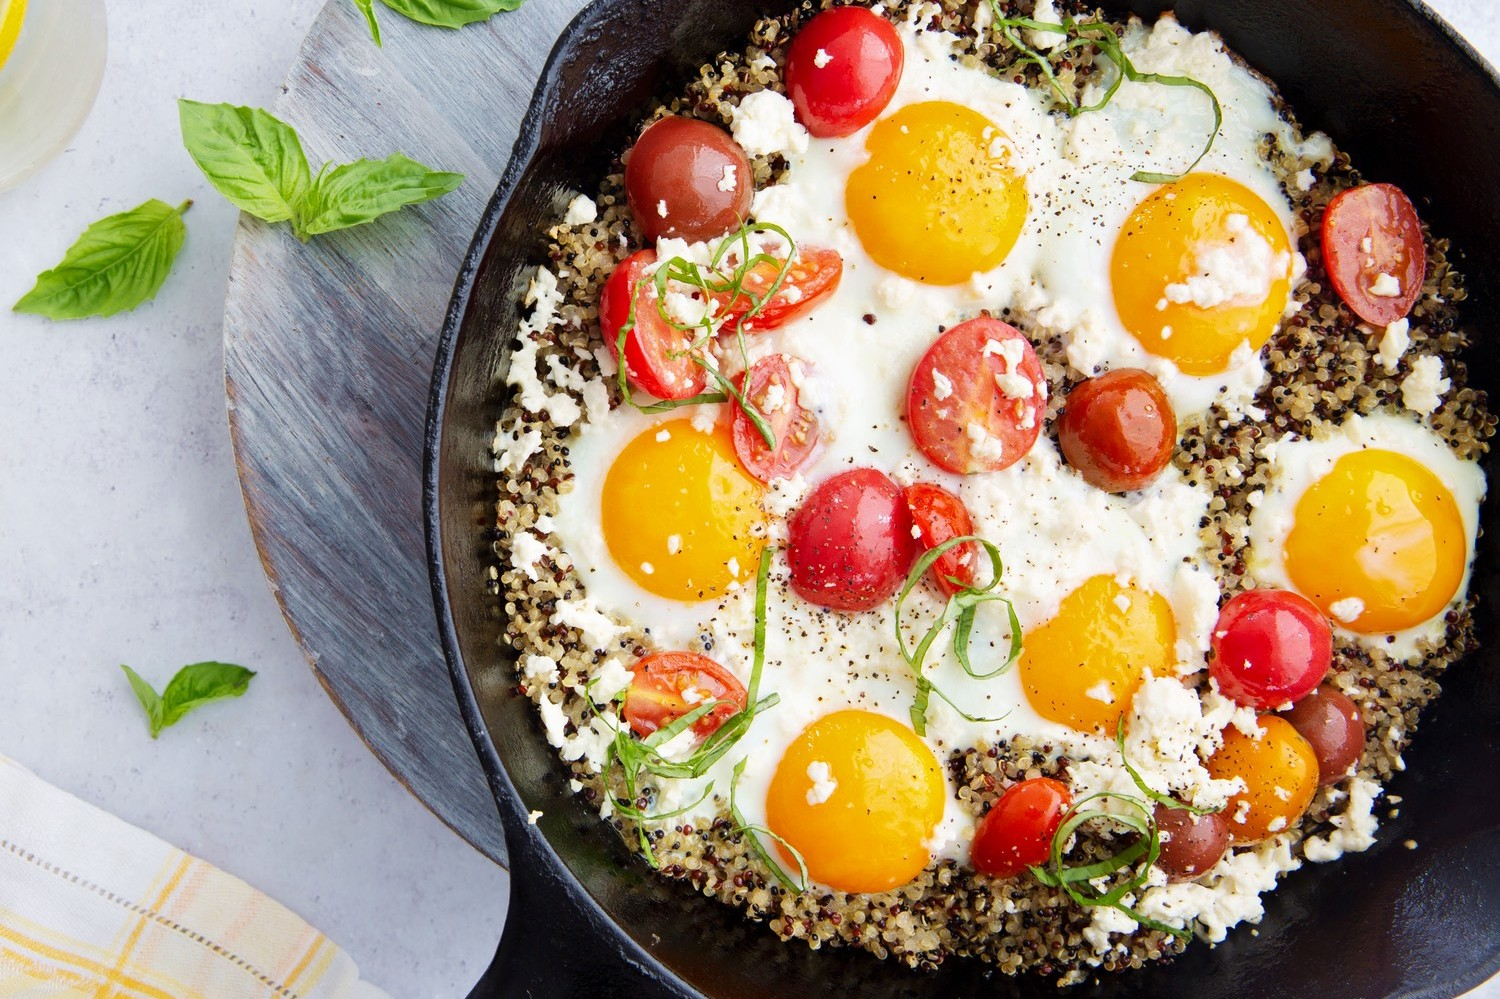 This summer skillet is filled with quinoa, heirloom tomatoes, basil, and feta cheese. Perfect as a summertime lunch or appetizer. | peteandgerrys.com